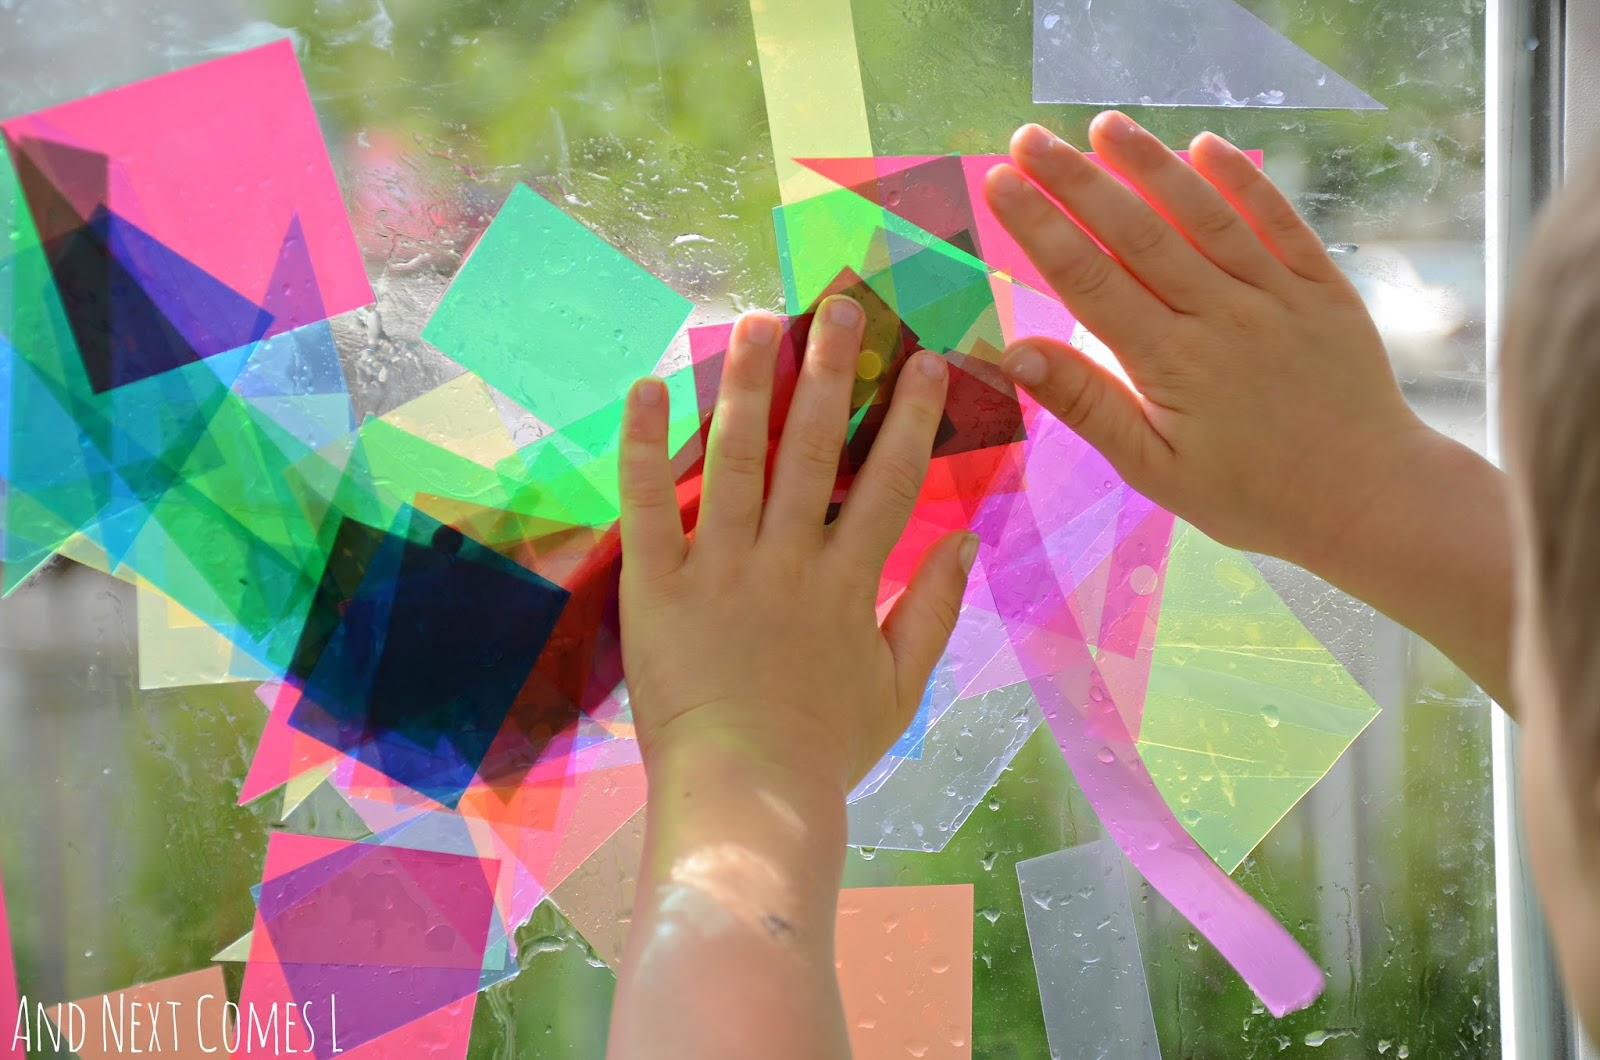 Repositionable abstract art for kids from And Next Comes L & Abstract Window Art Light \u0026 Reflections Series   And Next Comes L